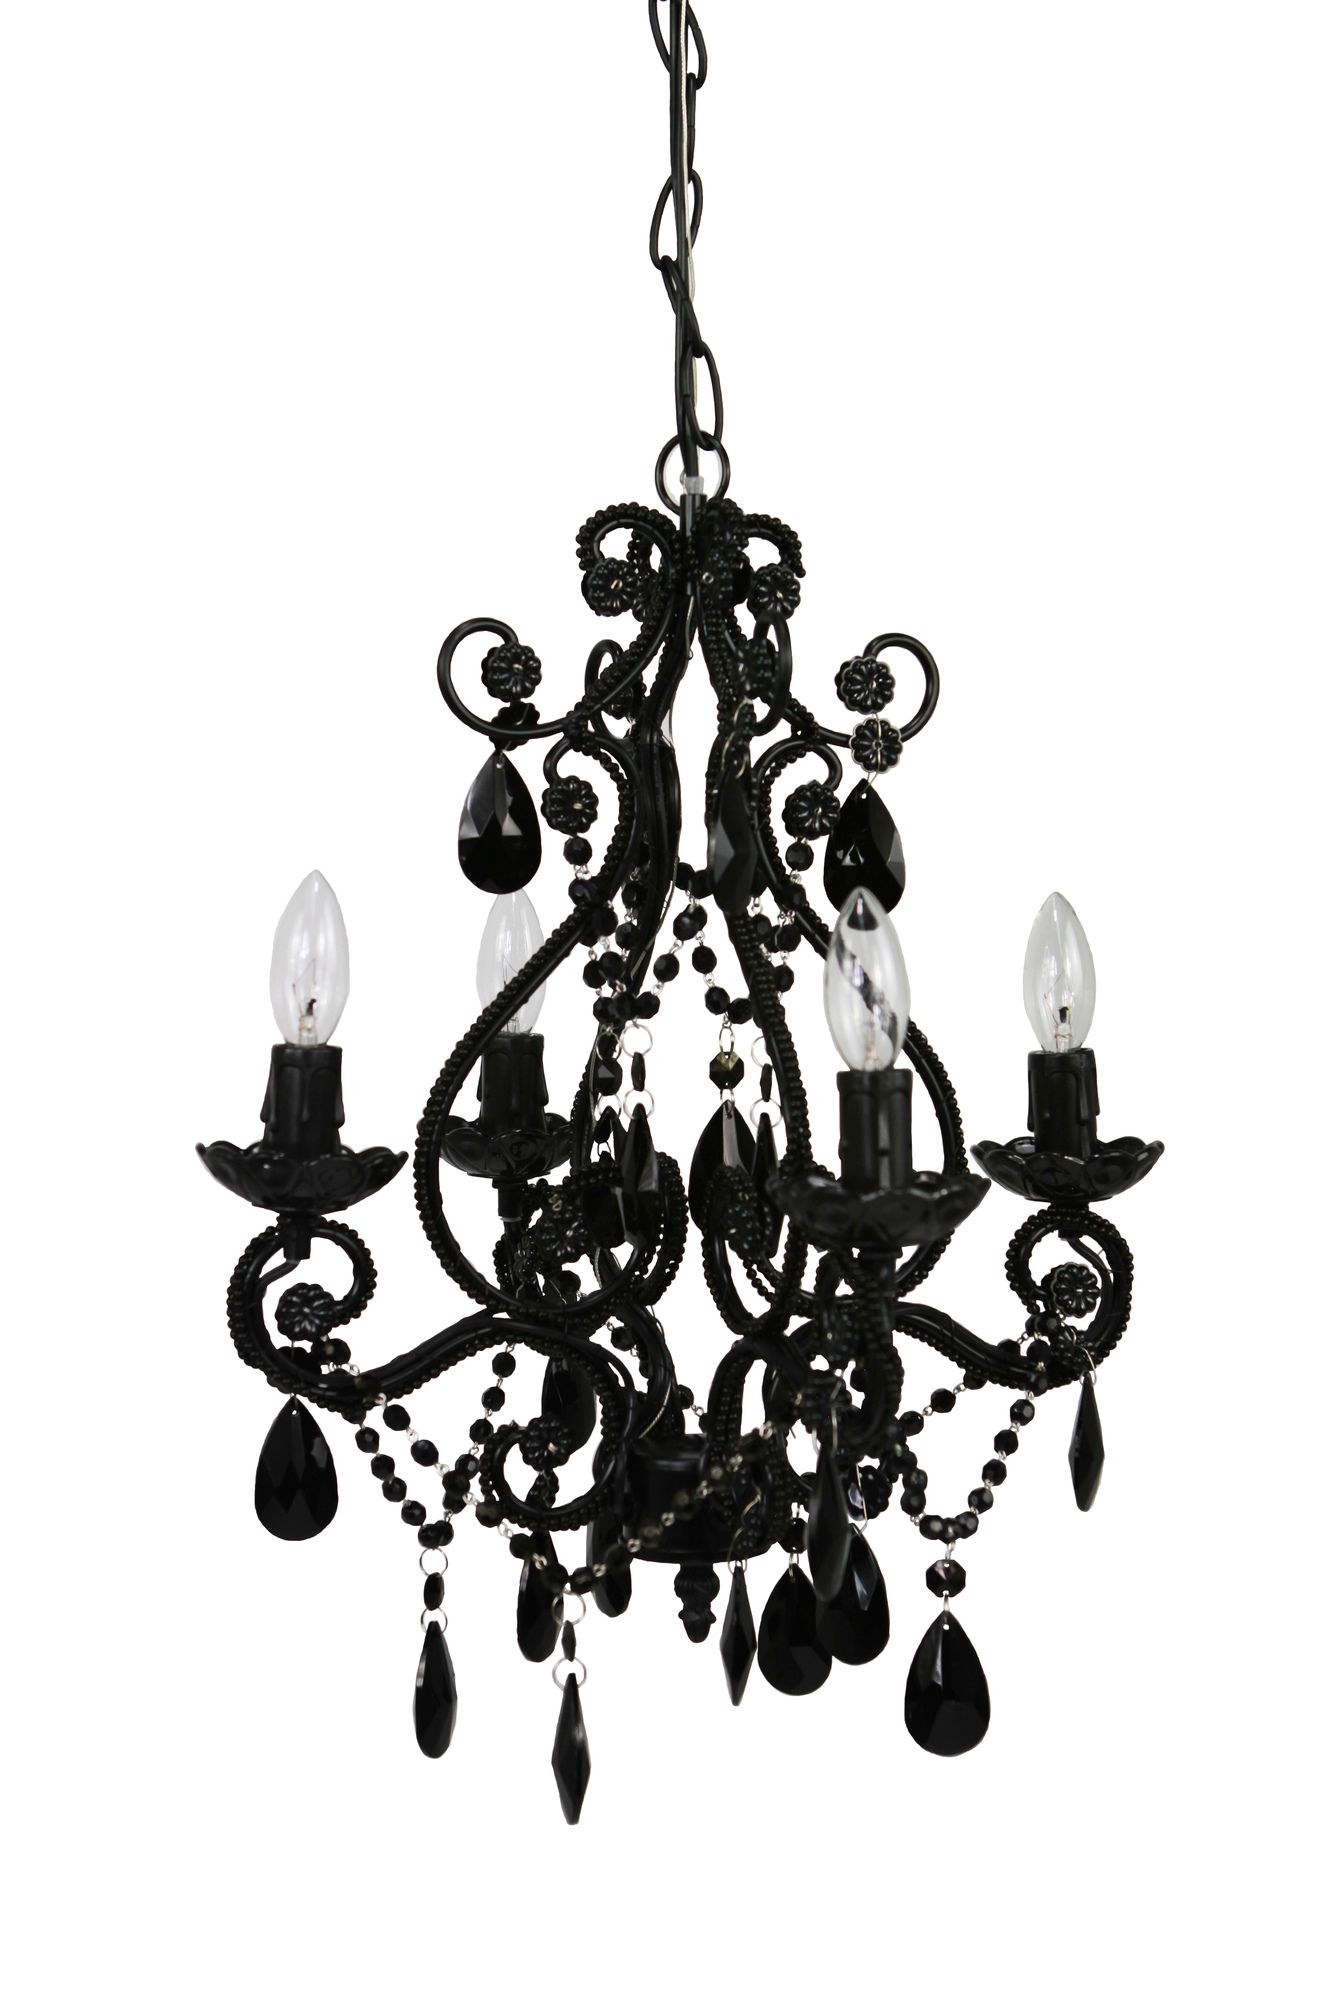 Modern and cheap chandeliers dream room chandelier lighting